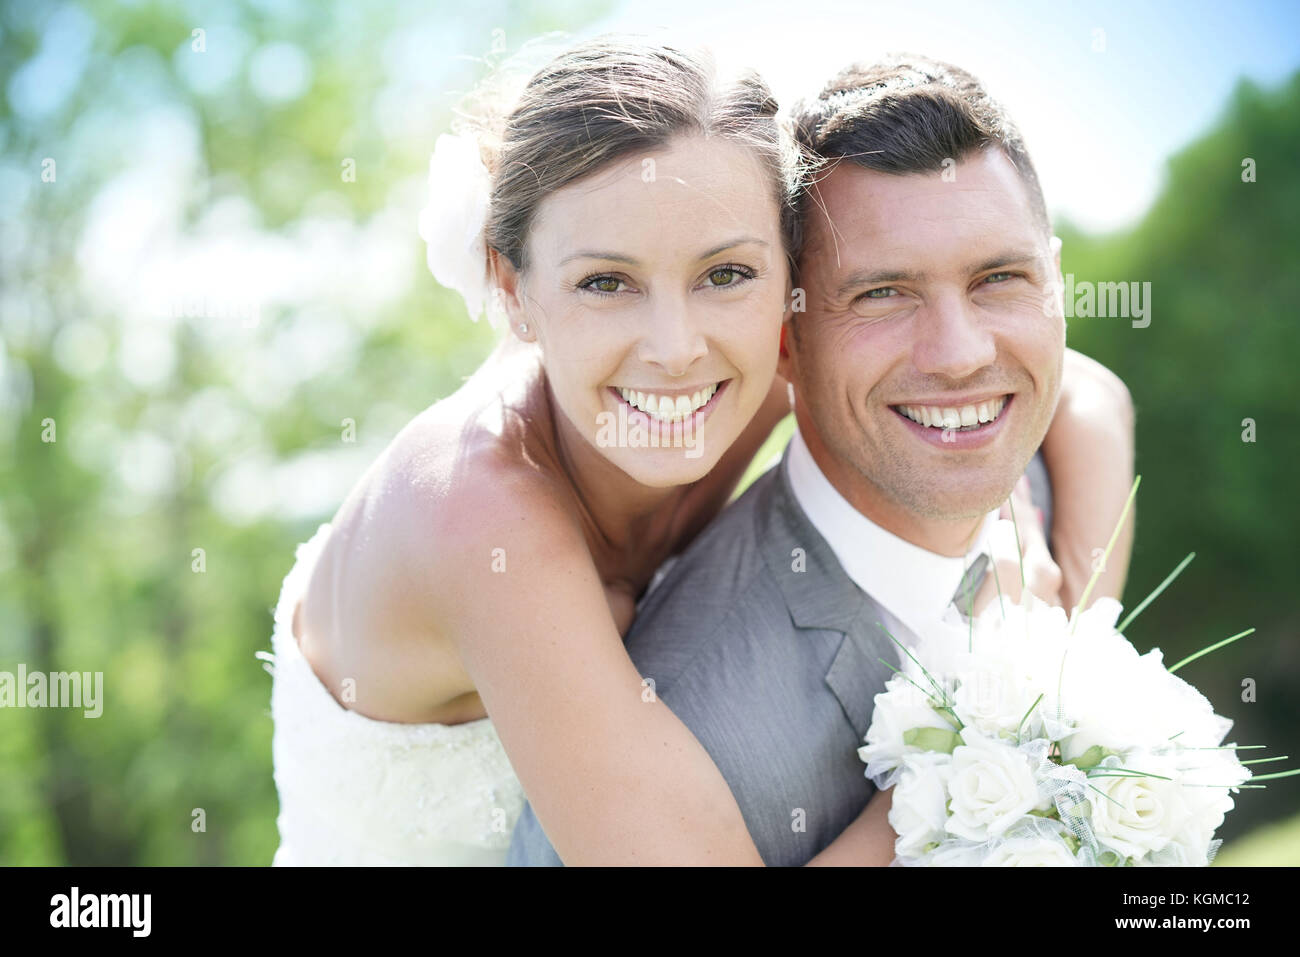 Groom giving piggyback ride to bride in countryside - Stock Image